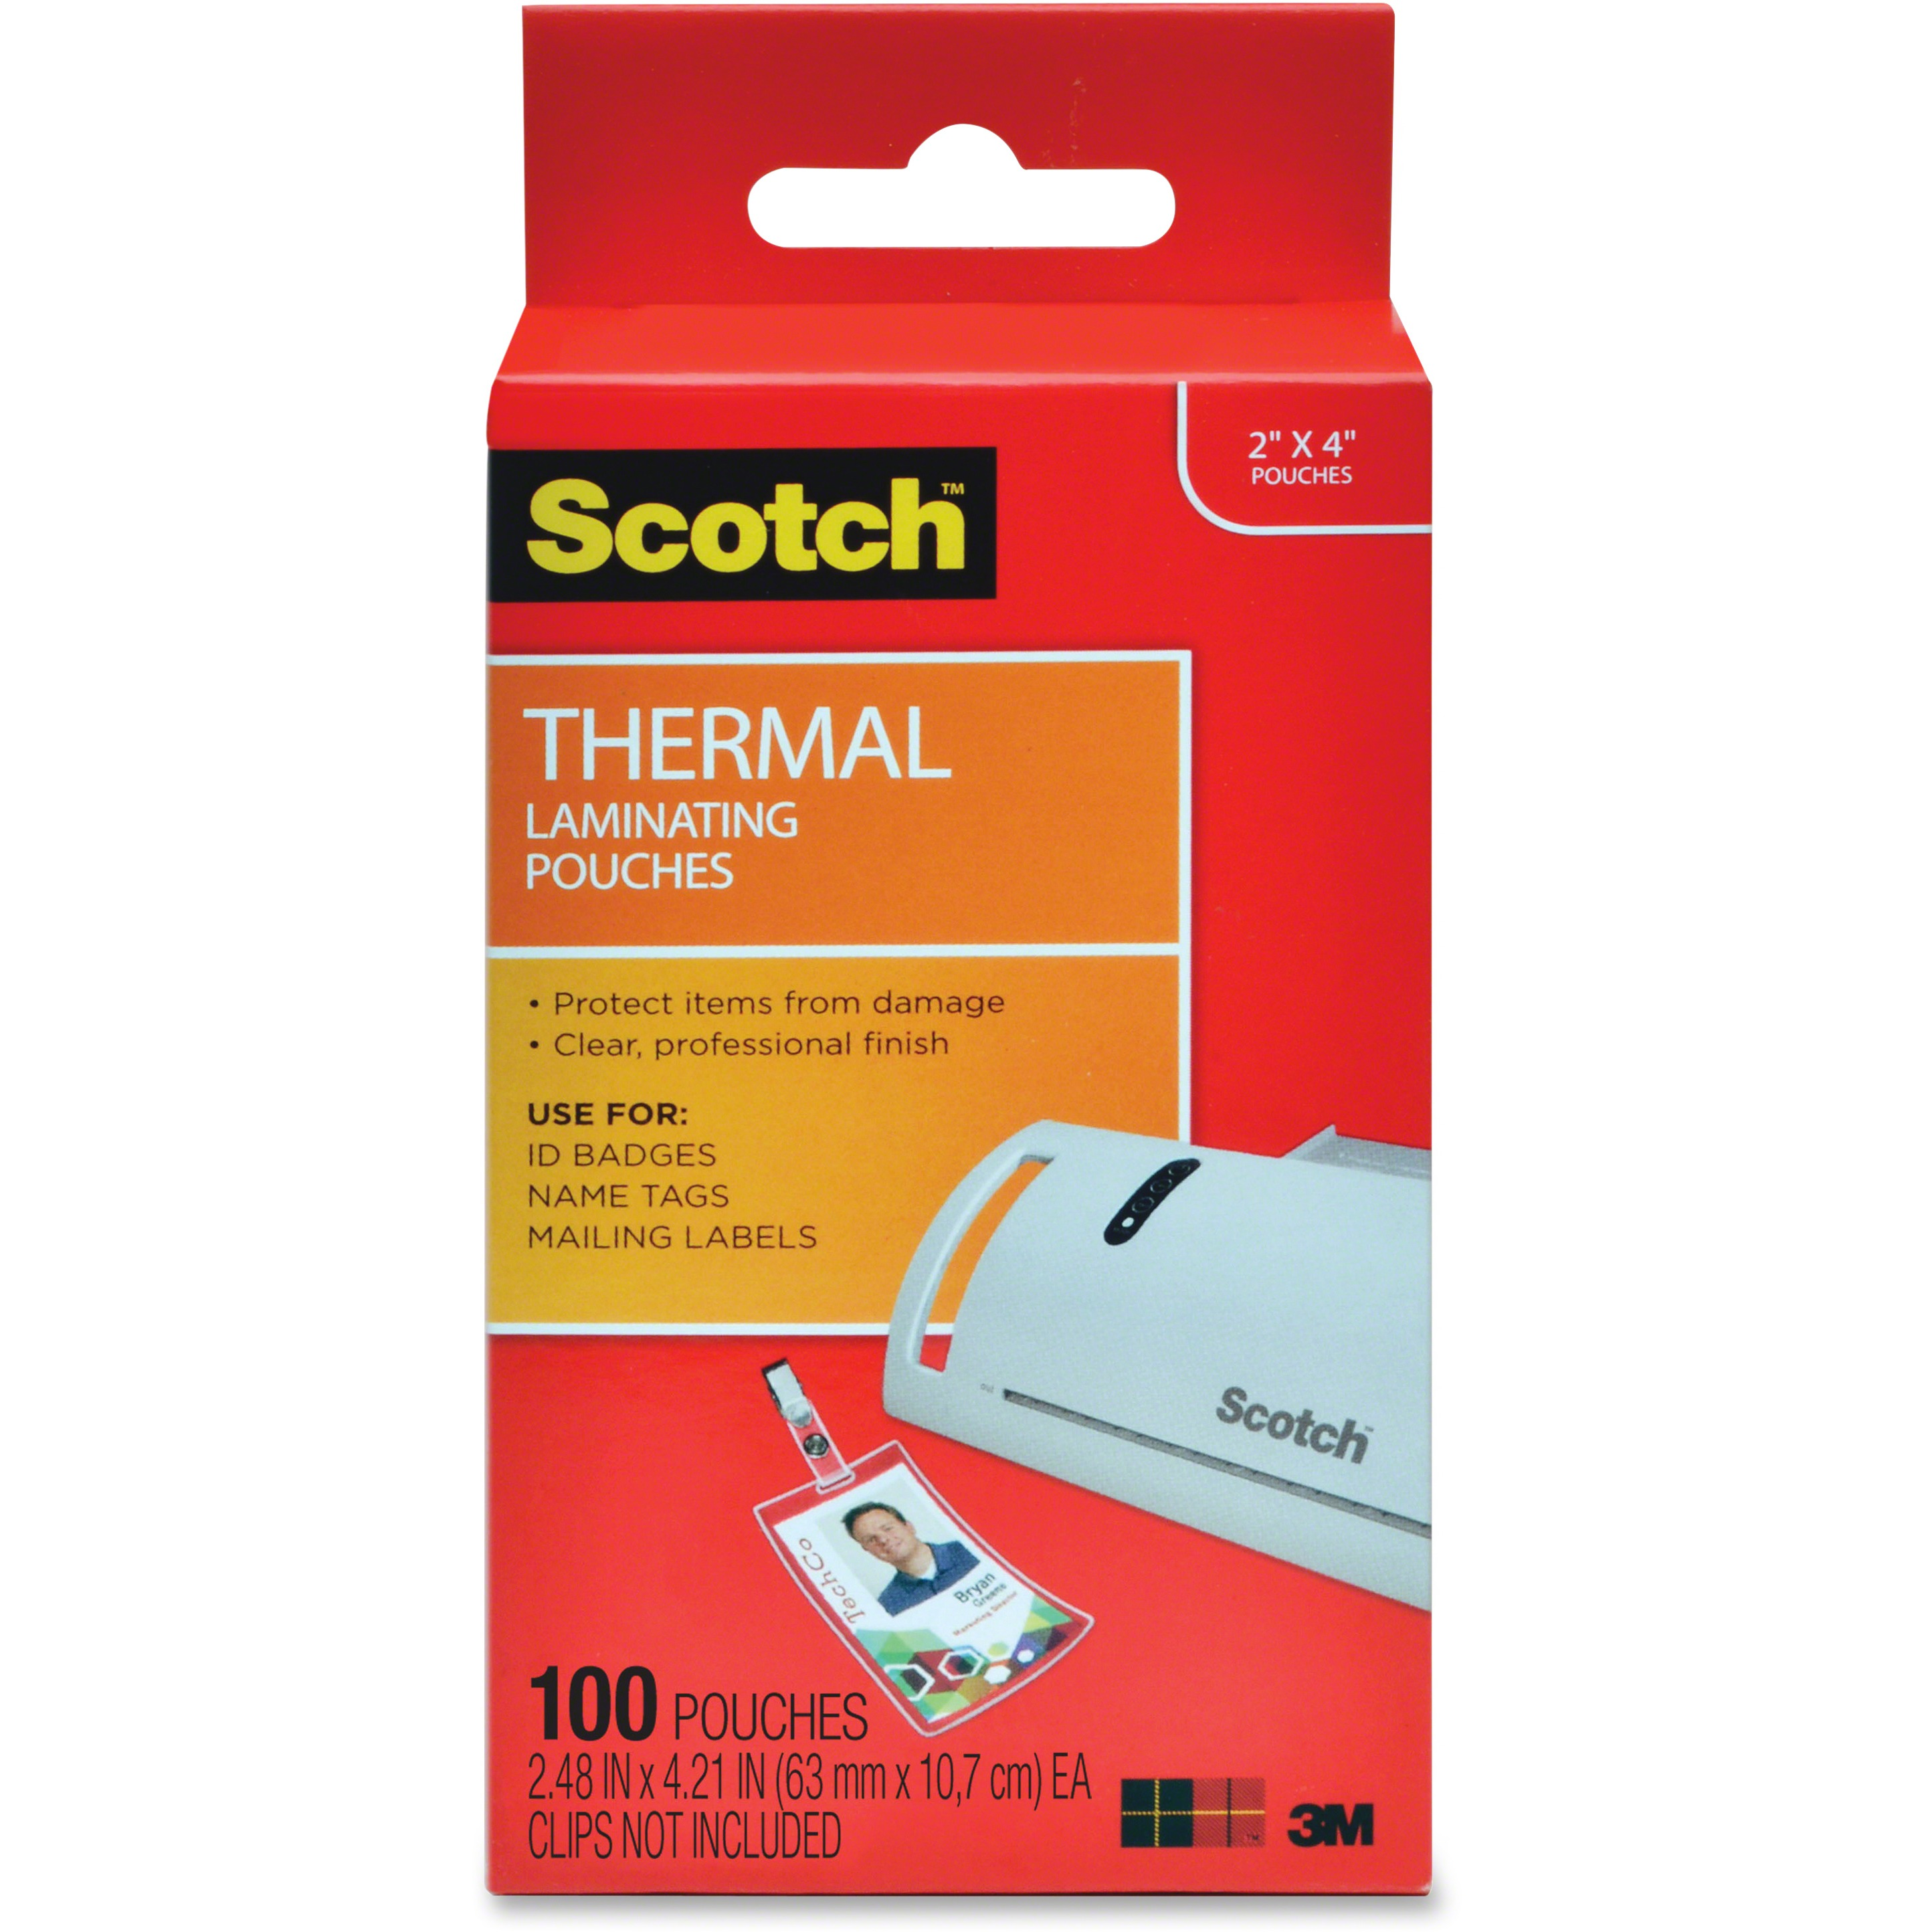 Scotch, MMMTP5852100, Thermal Laminating Pouches, 100 / Pack, Clear